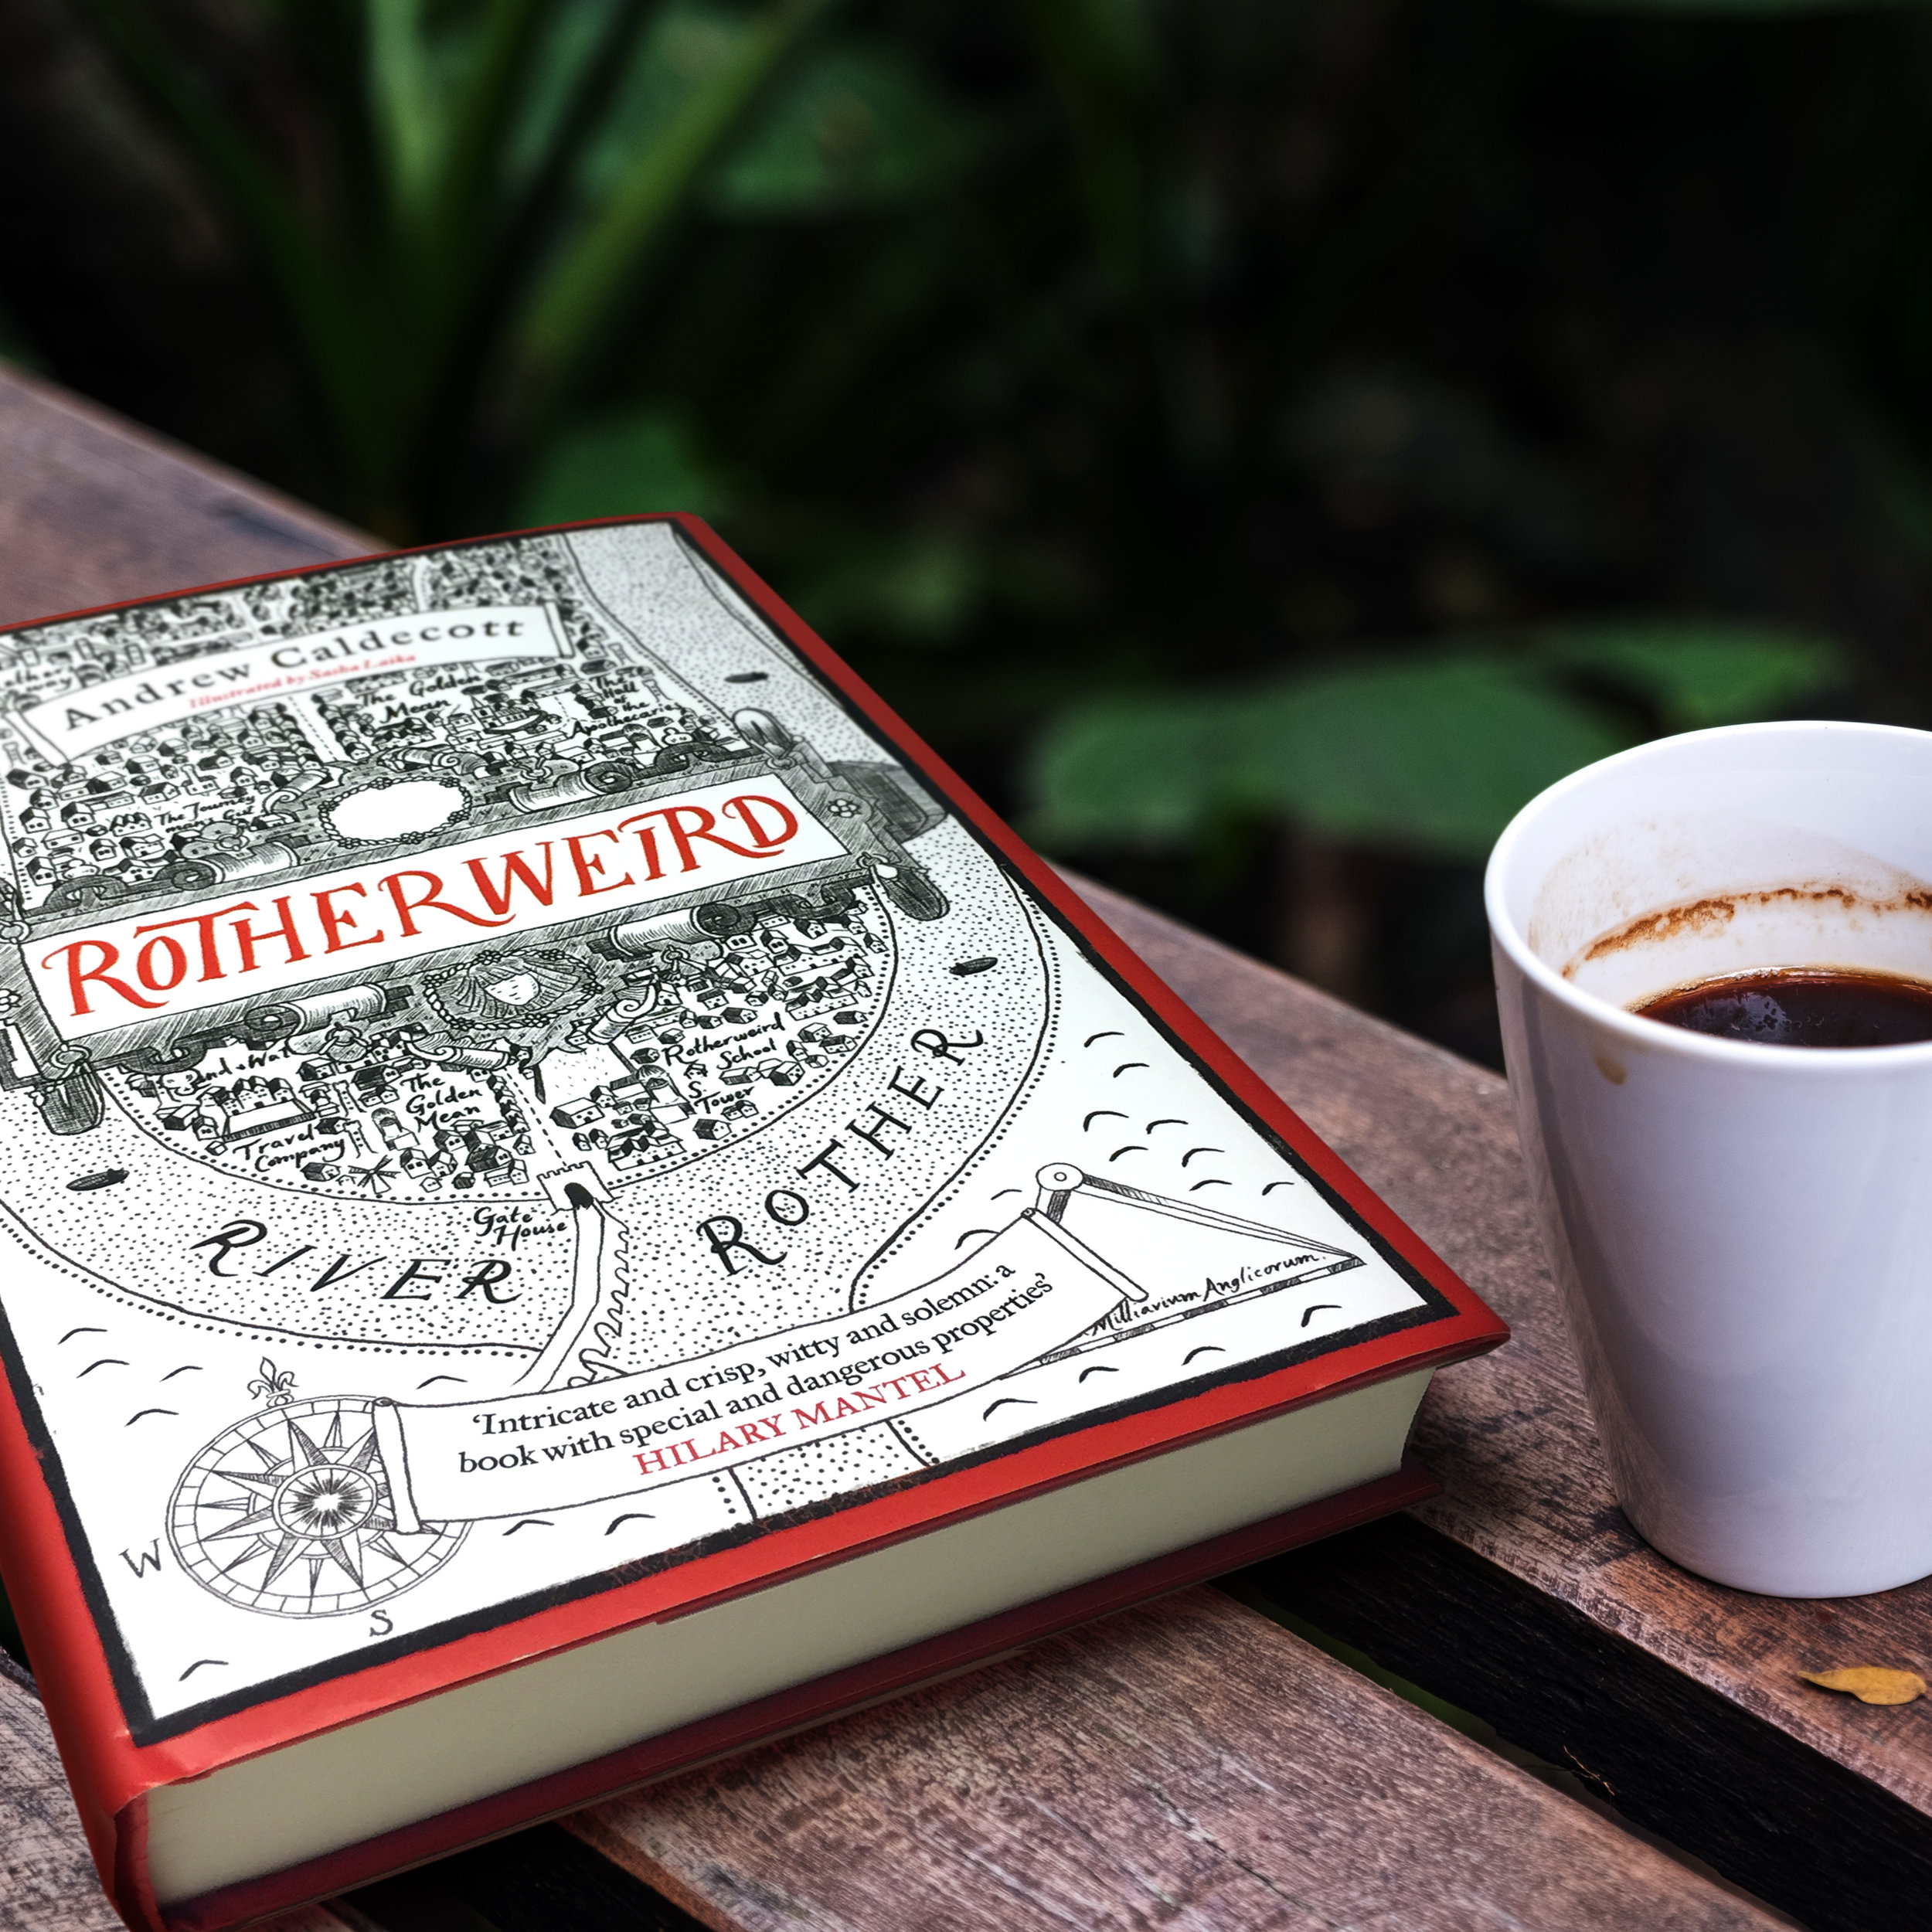 * ROTHERWEIRD by Andrew Caldecott *